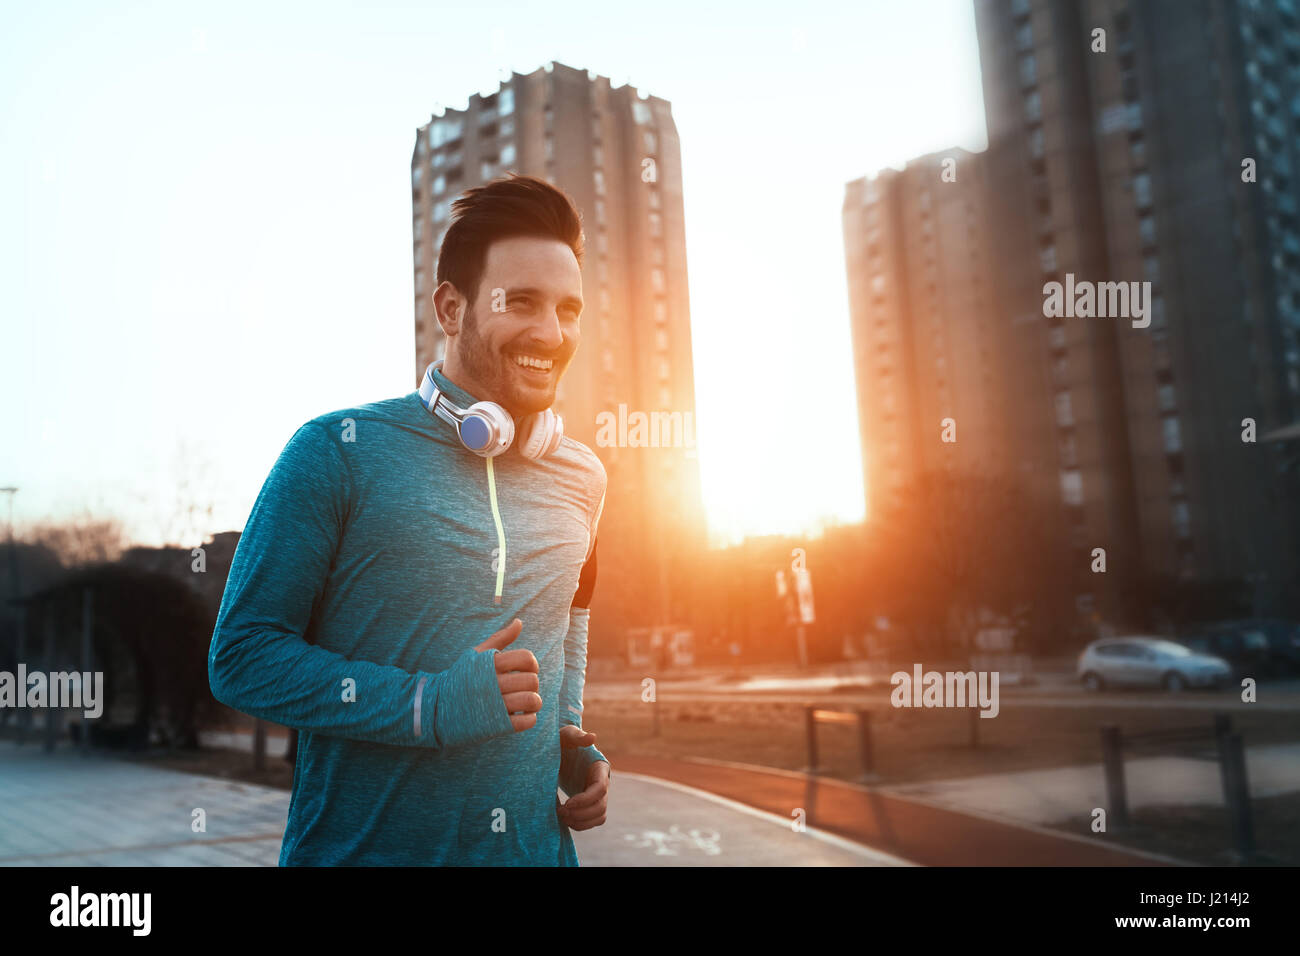 Handsome runner exercising by running and jogging  in city - Stock Image